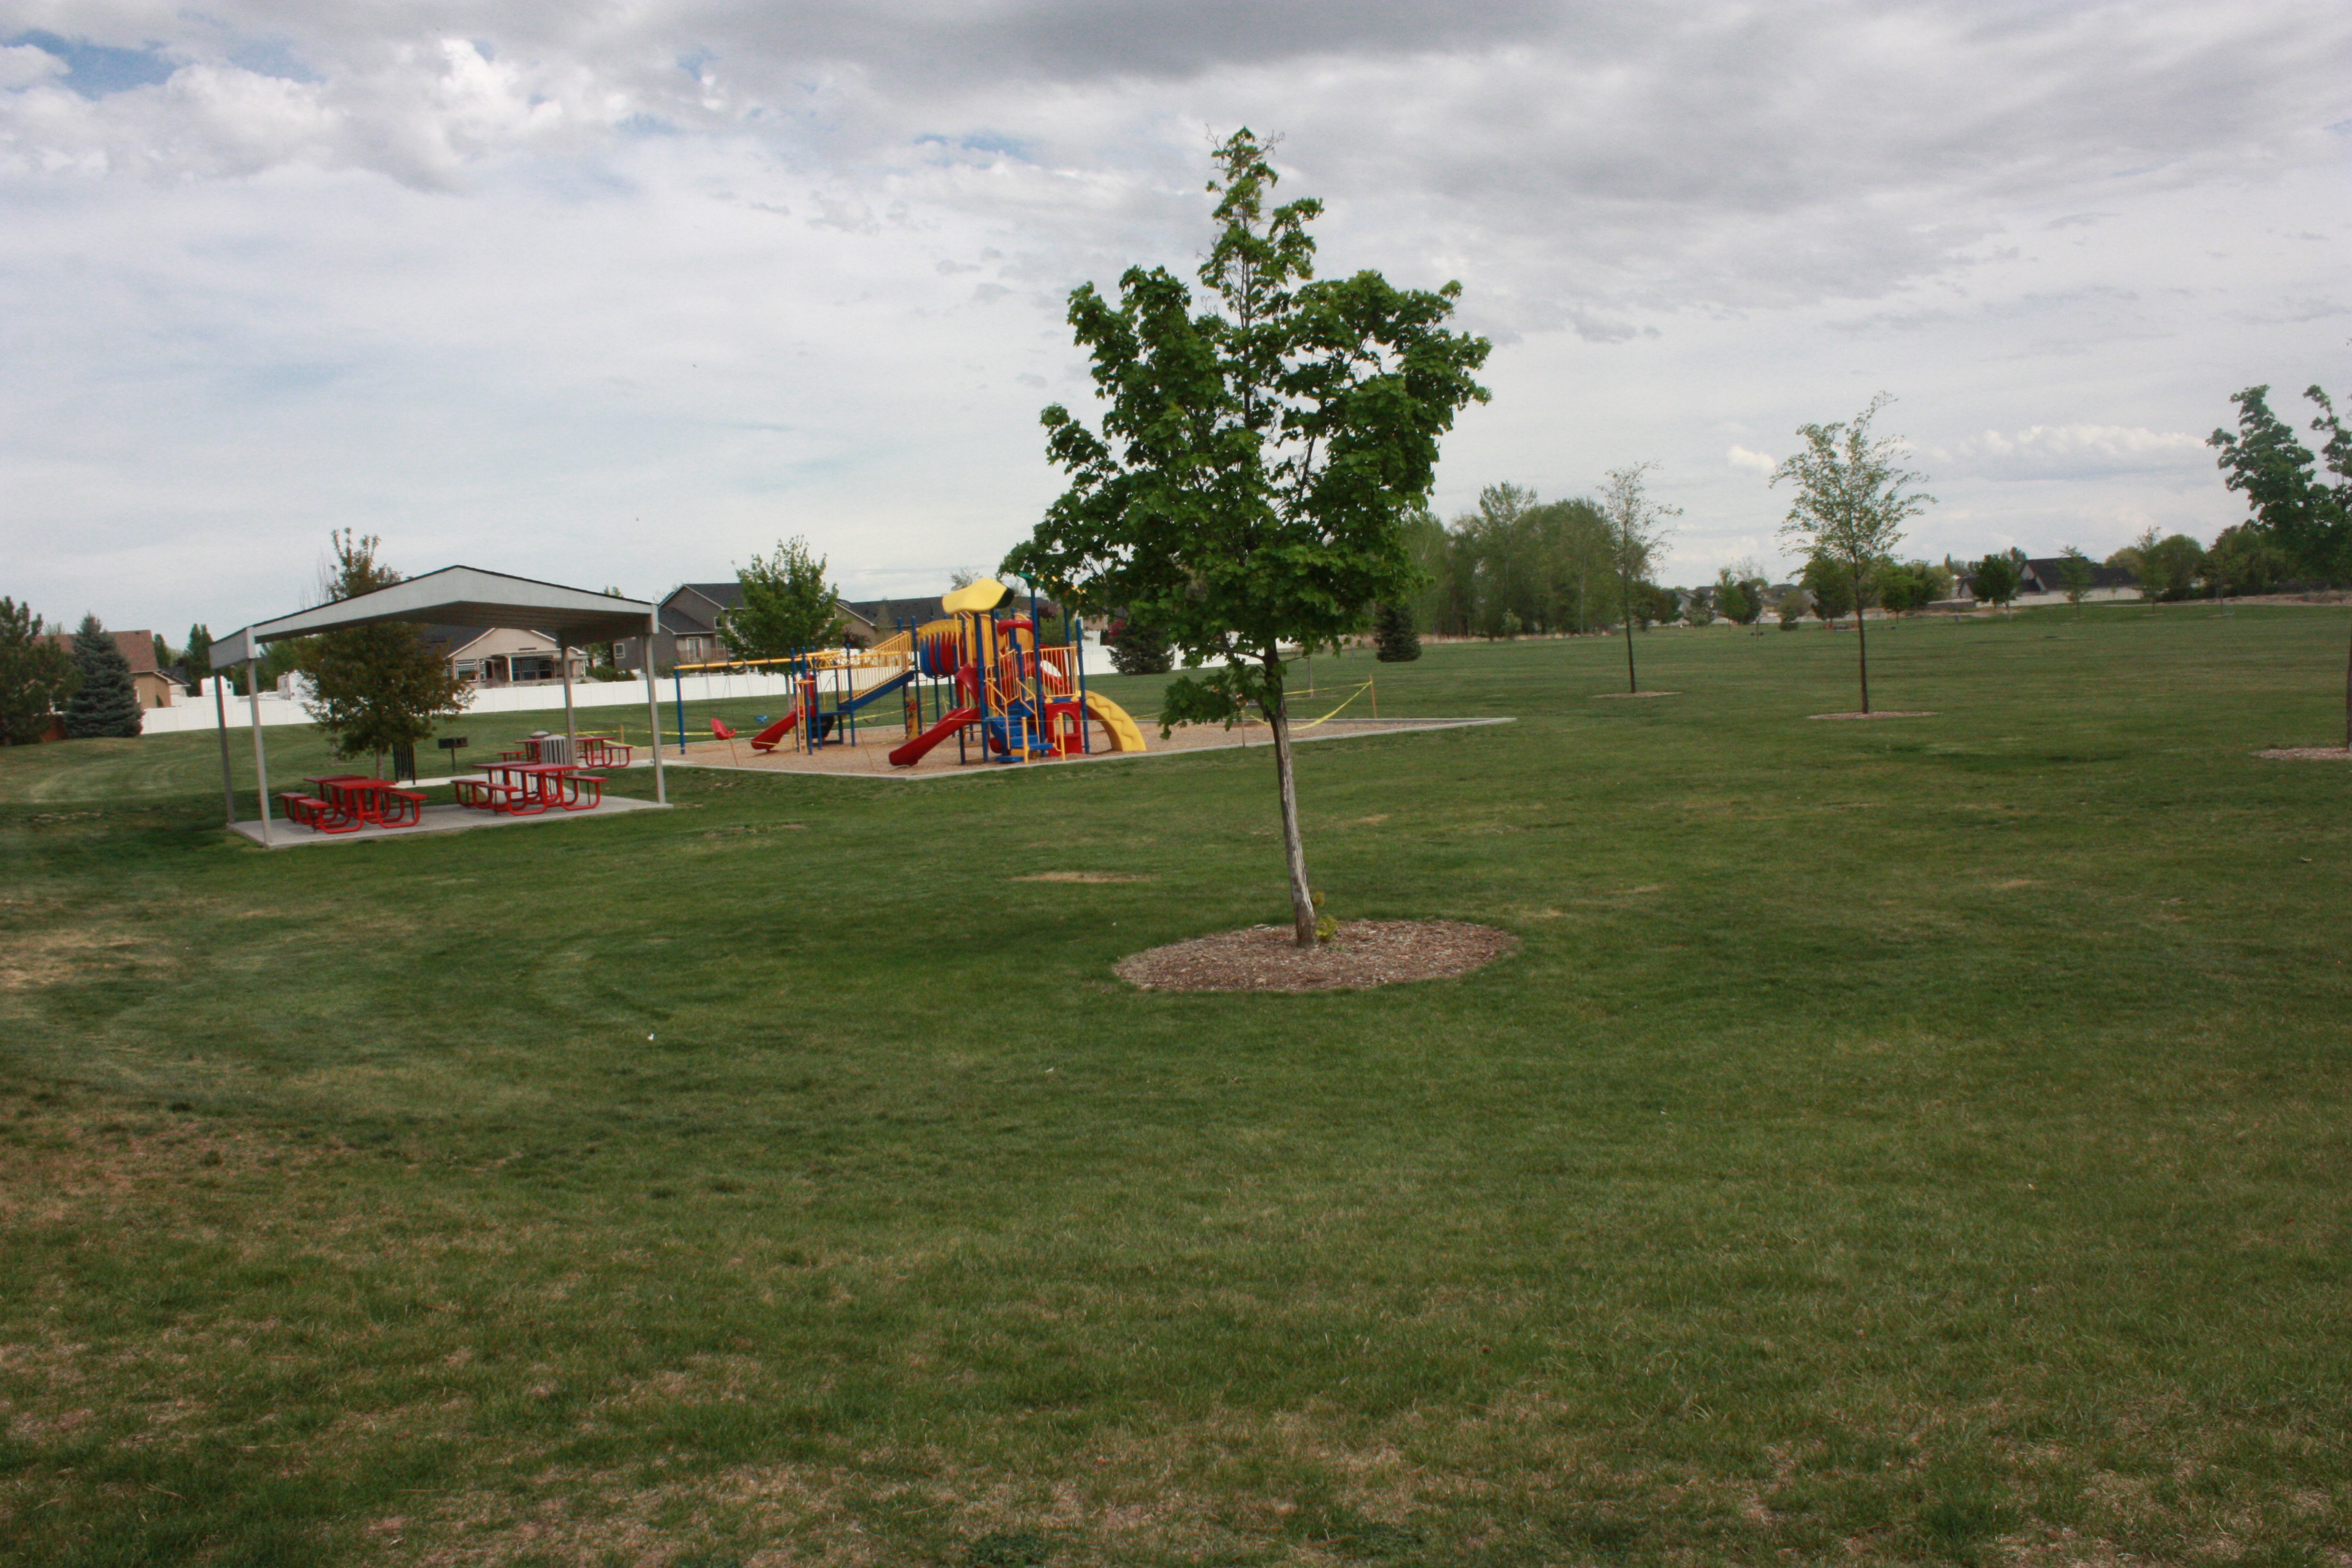 Grassy area with covered structure and blue, red, and yellow play structure